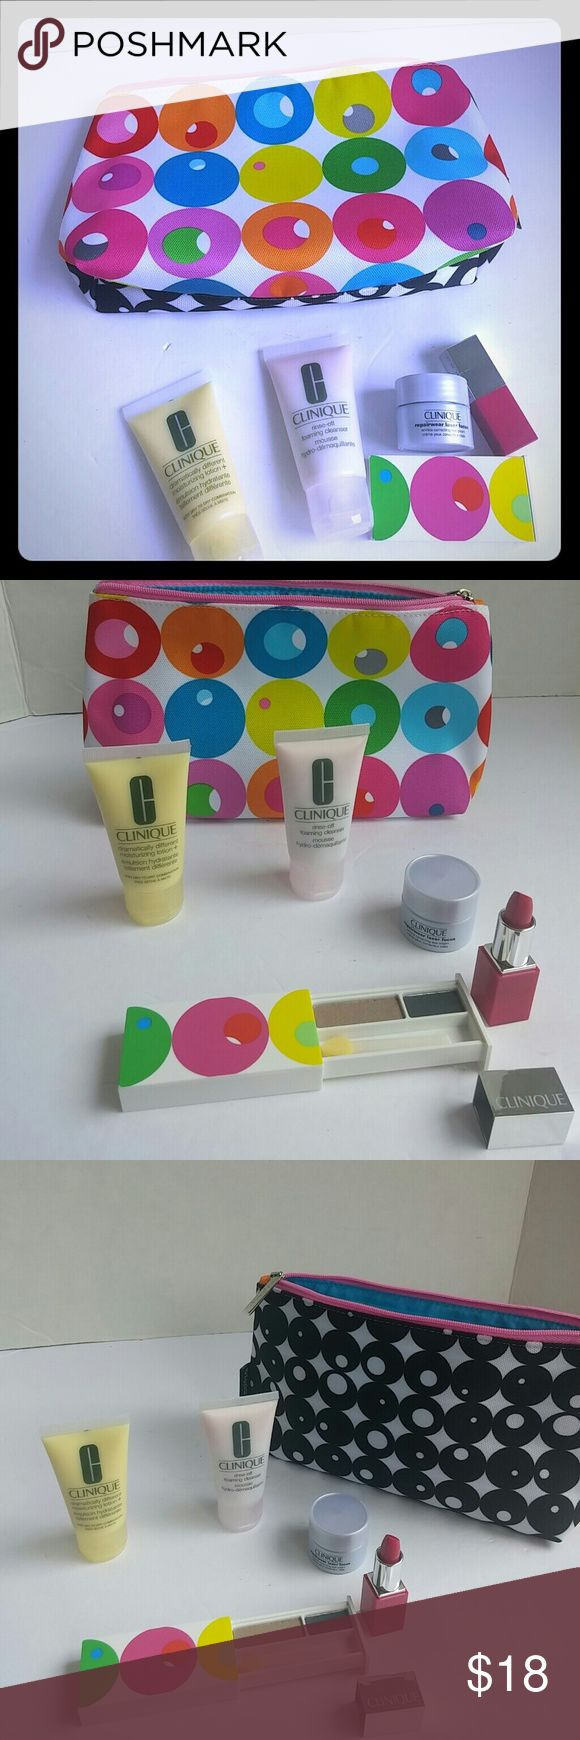 Clinique Make-up Bag Bundle Includes samples of skin care and cosmetics from Clinique. Make-up bag has a different design in each side. All products new and unused! Clinique Makeup